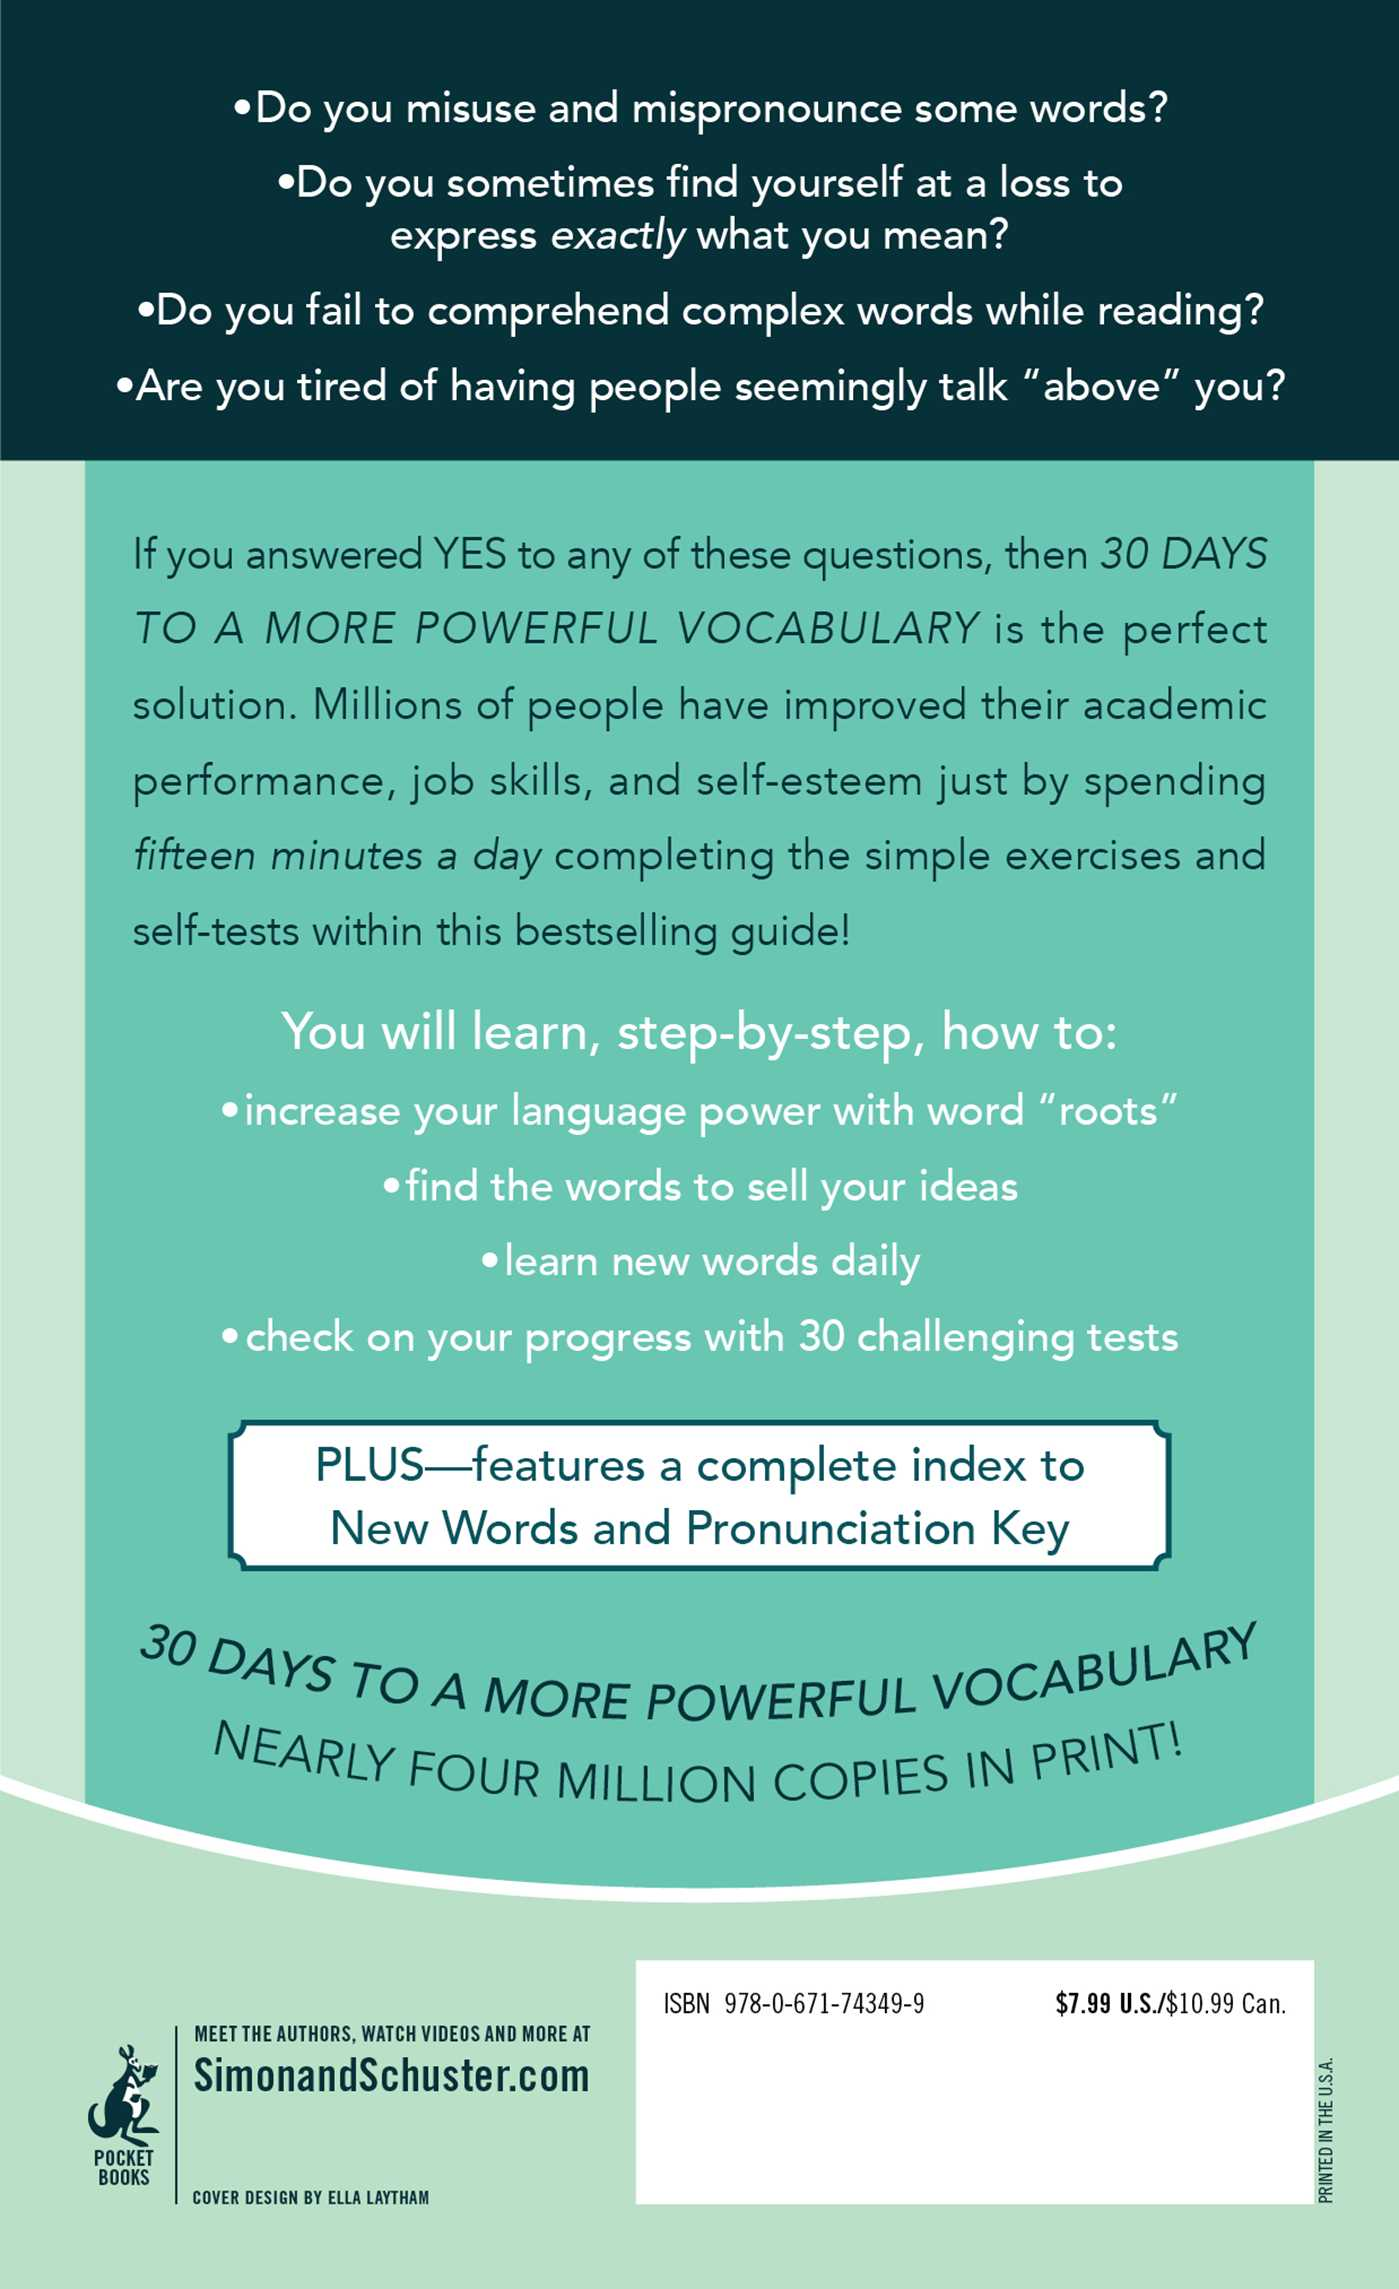 30 days to a more powerful vocabulary 9780671743499 hr back